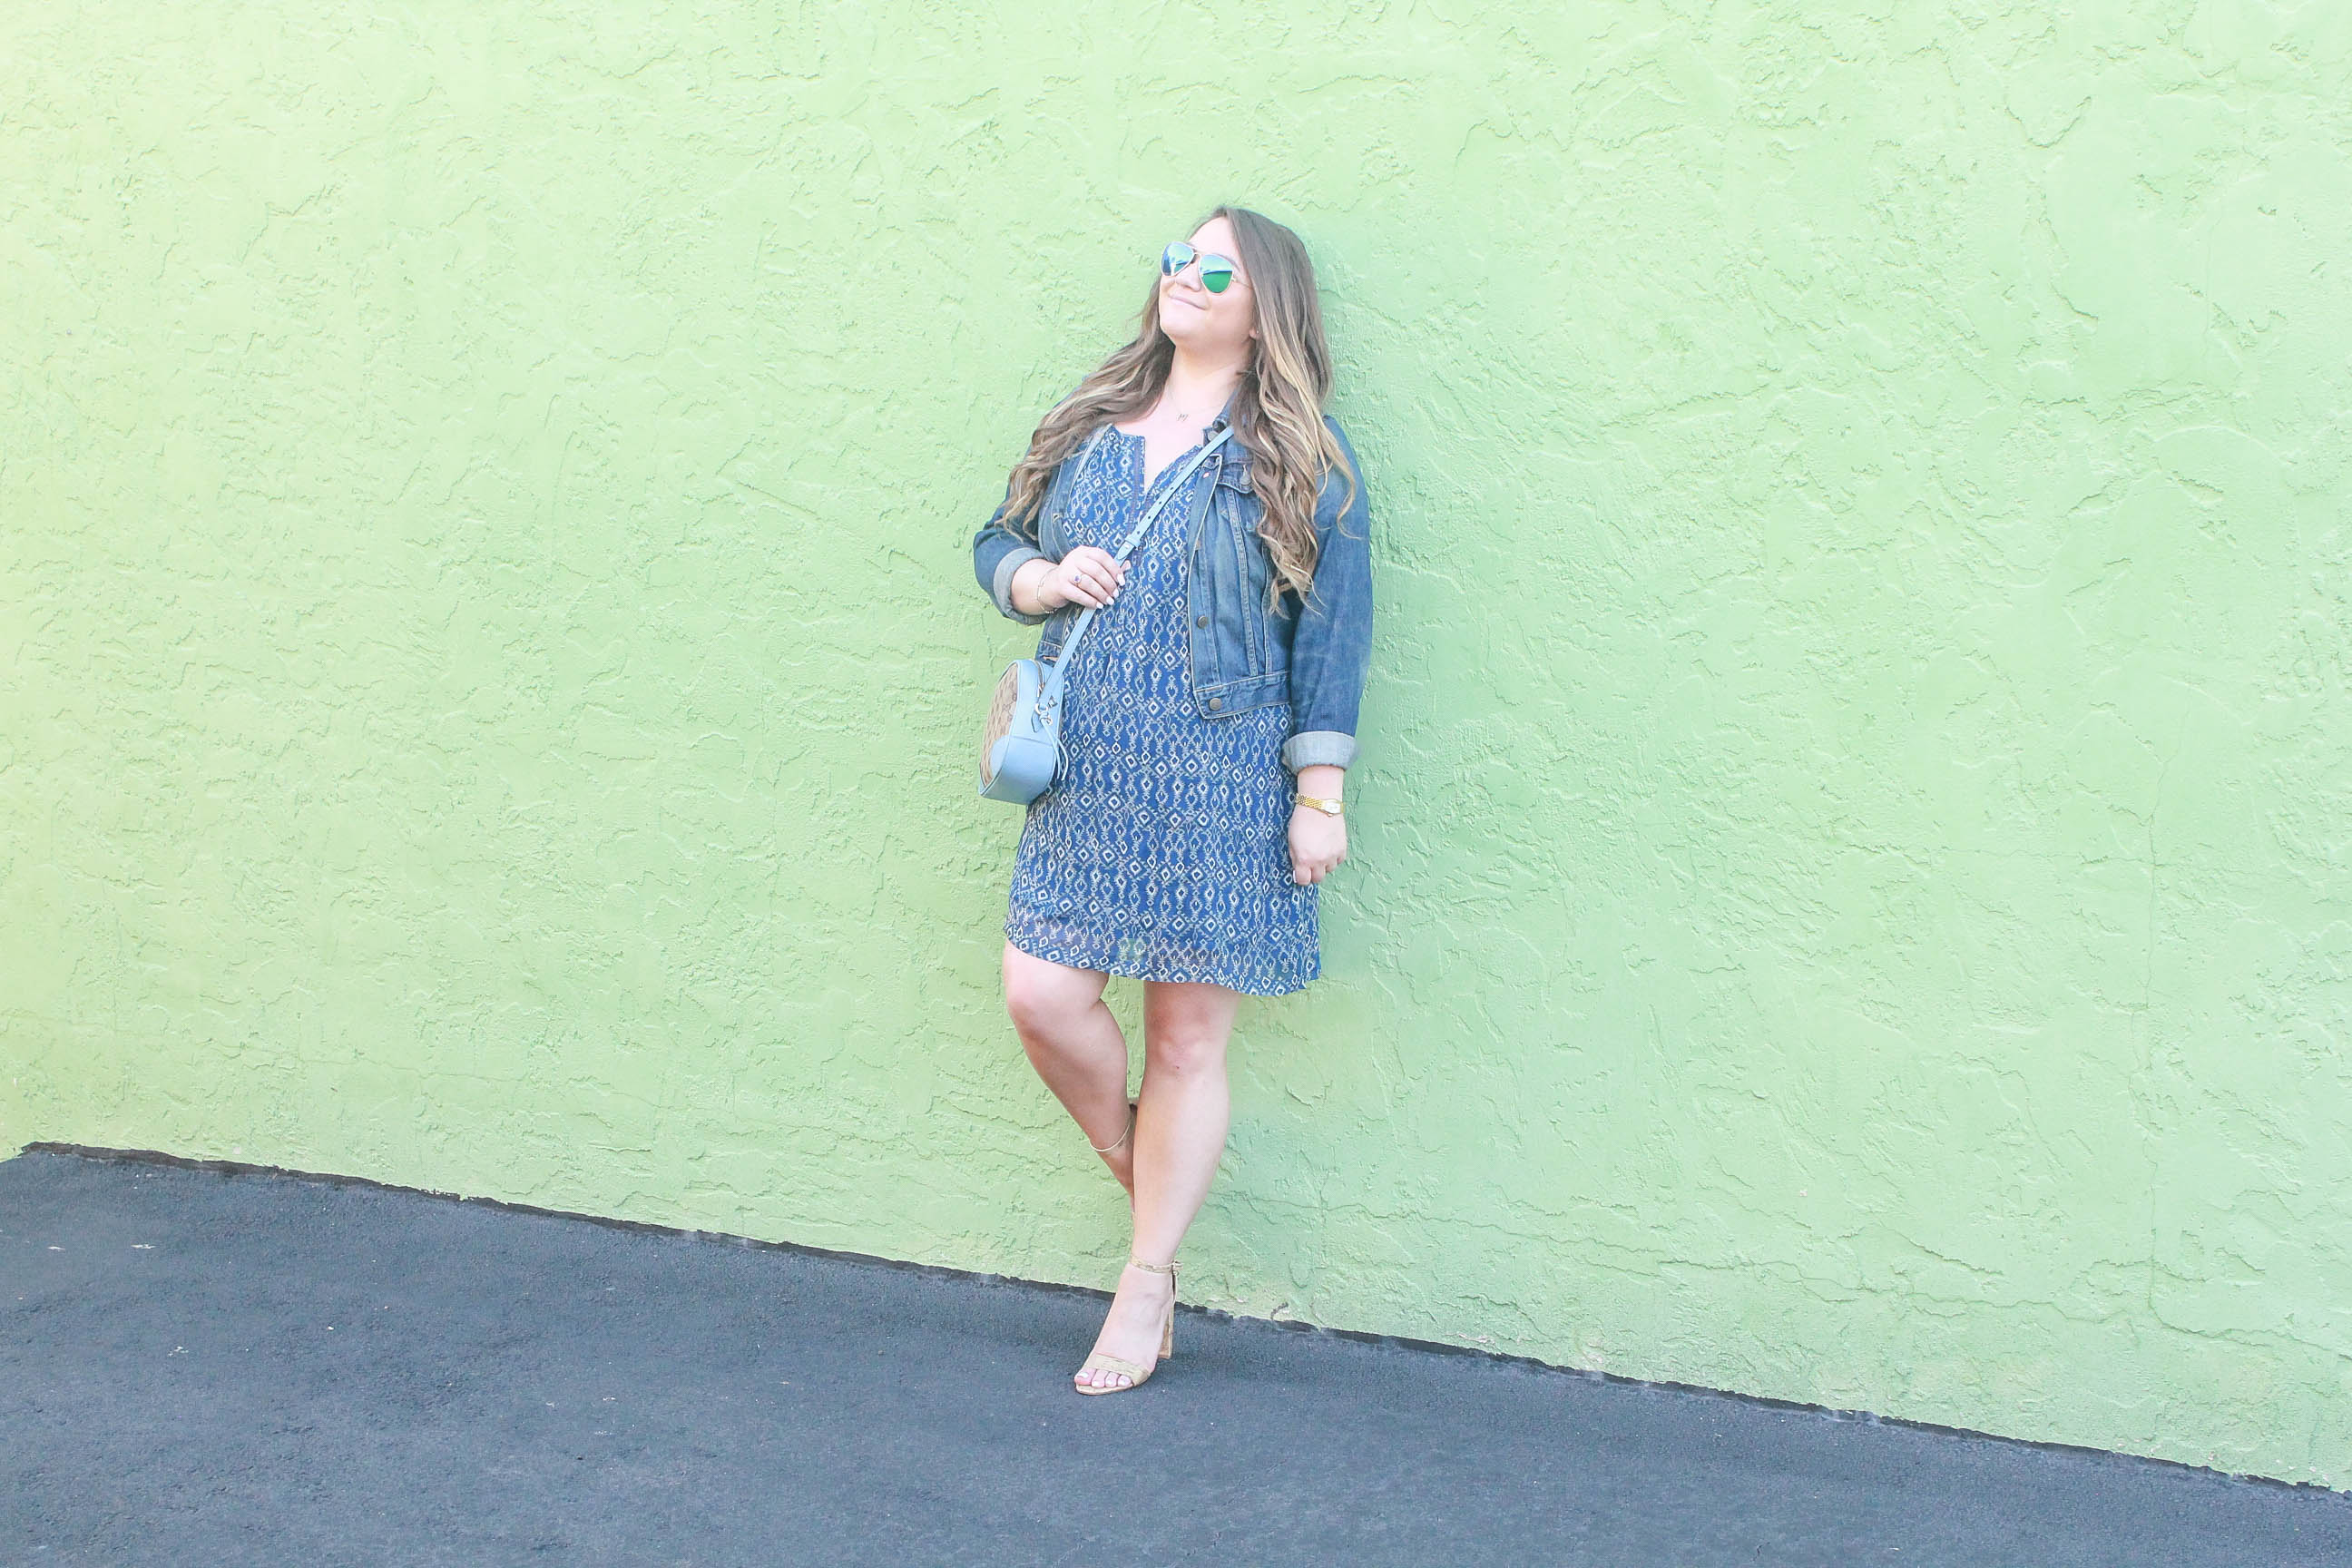 missyonmadison, missyonmadison blog, missyonmadison instagram, bloglovin, outfit inspo, first day of spring, spring style, spring style 2018, spring 2018 outfit inspo,fashion blog, fashion blogger, ootd, fashion blogger los angeles, la, la blogger, melissa tierney, tart collections, tart collections dress, old navy denim jacket, womens denim jacket, cork ankle strap heels, cork sandals, spring shoes, spring sandals, gucci camera bag, le specs sunglasses, wall crawl, style blogger, gucci crossbody bag,